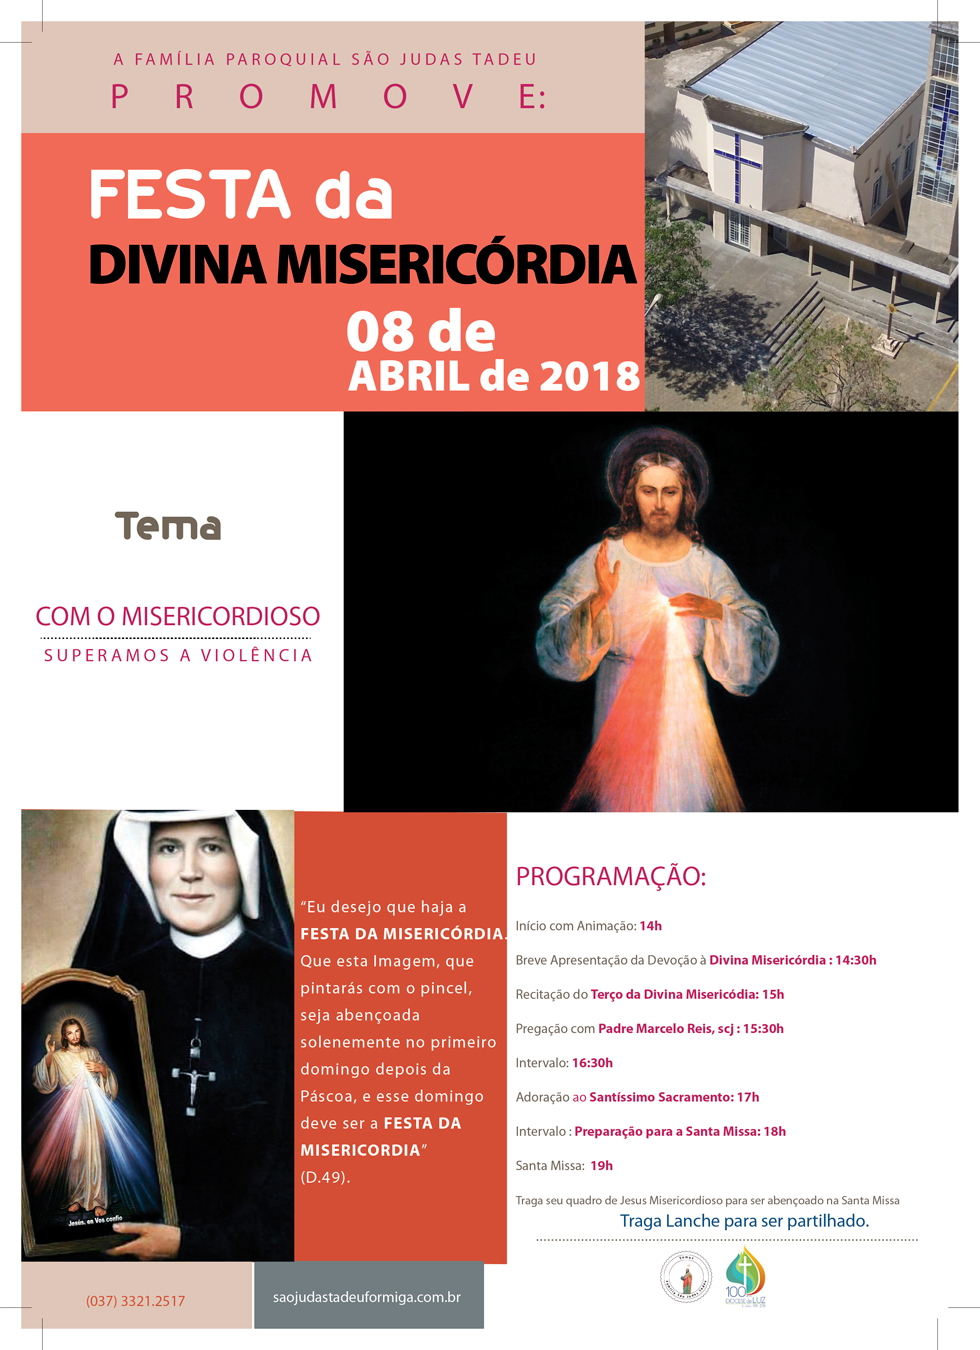 festa-divina-misericordia-2018face